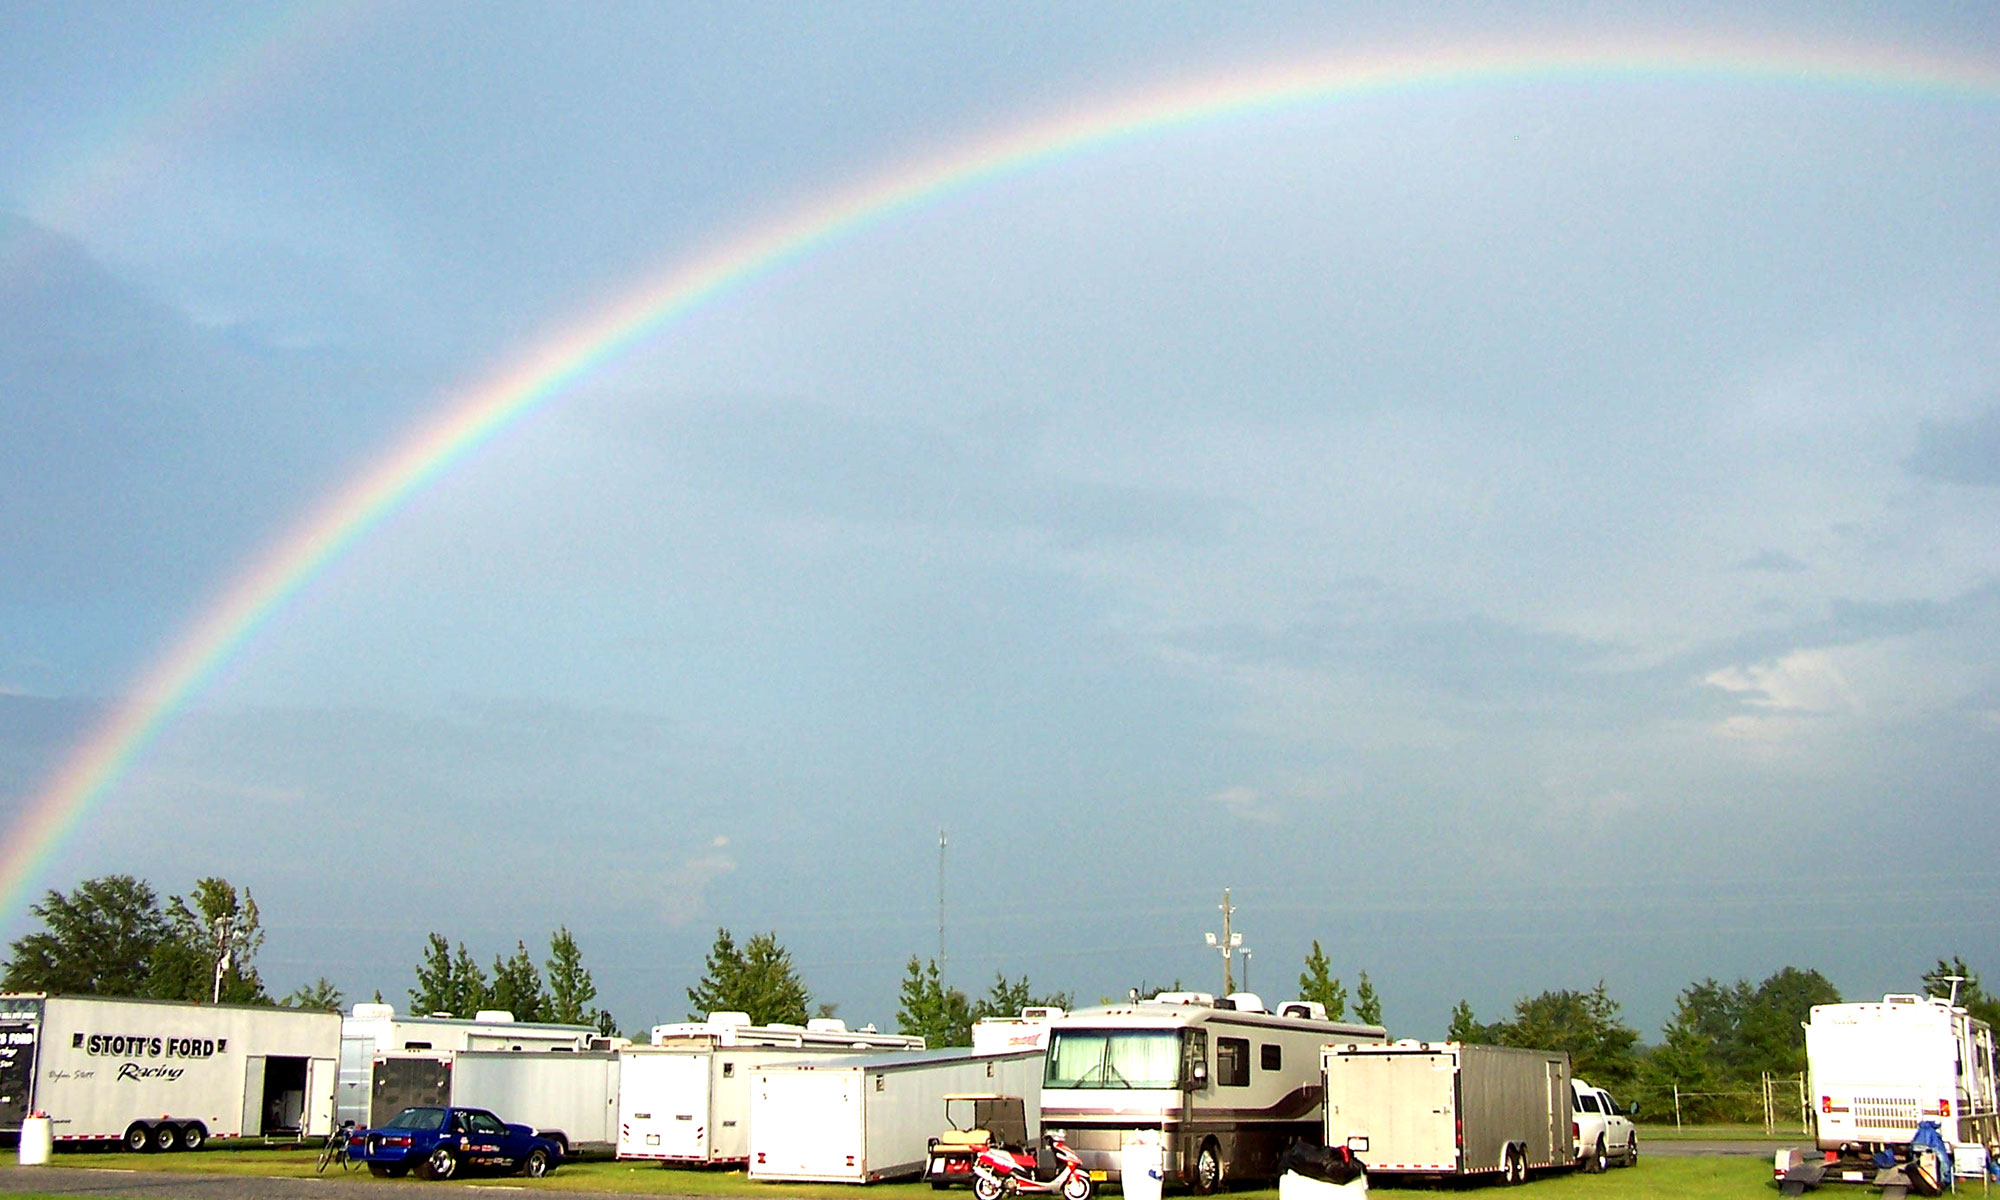 A rainbow in the sky above campers and a race car in a field